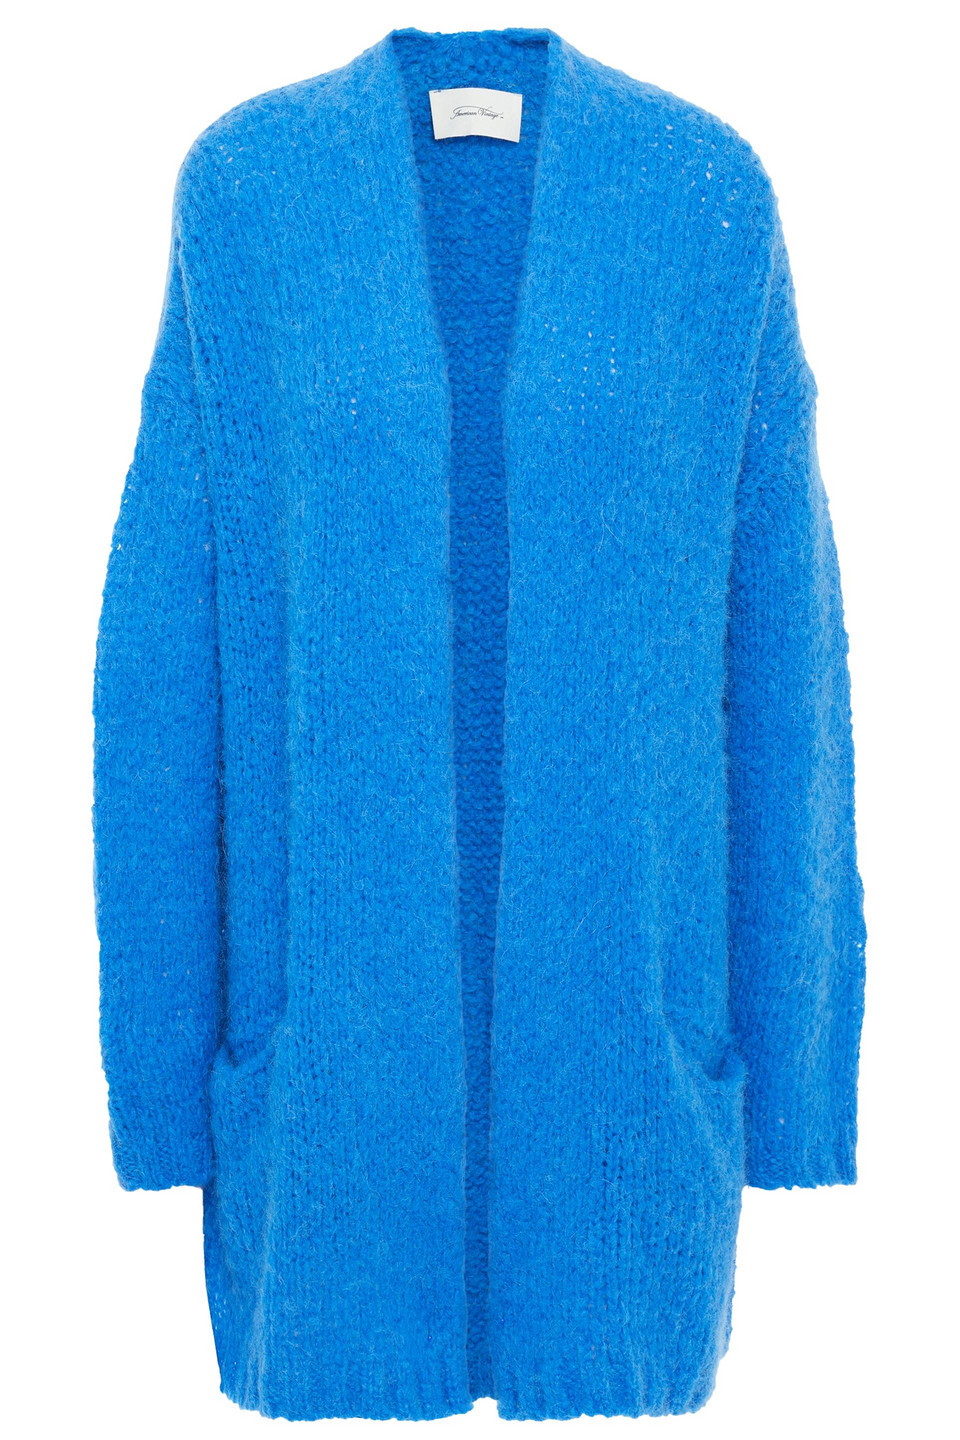 American Vintage   American Vintage Woman Brushed Knitted Cardigan Azure   Clouty